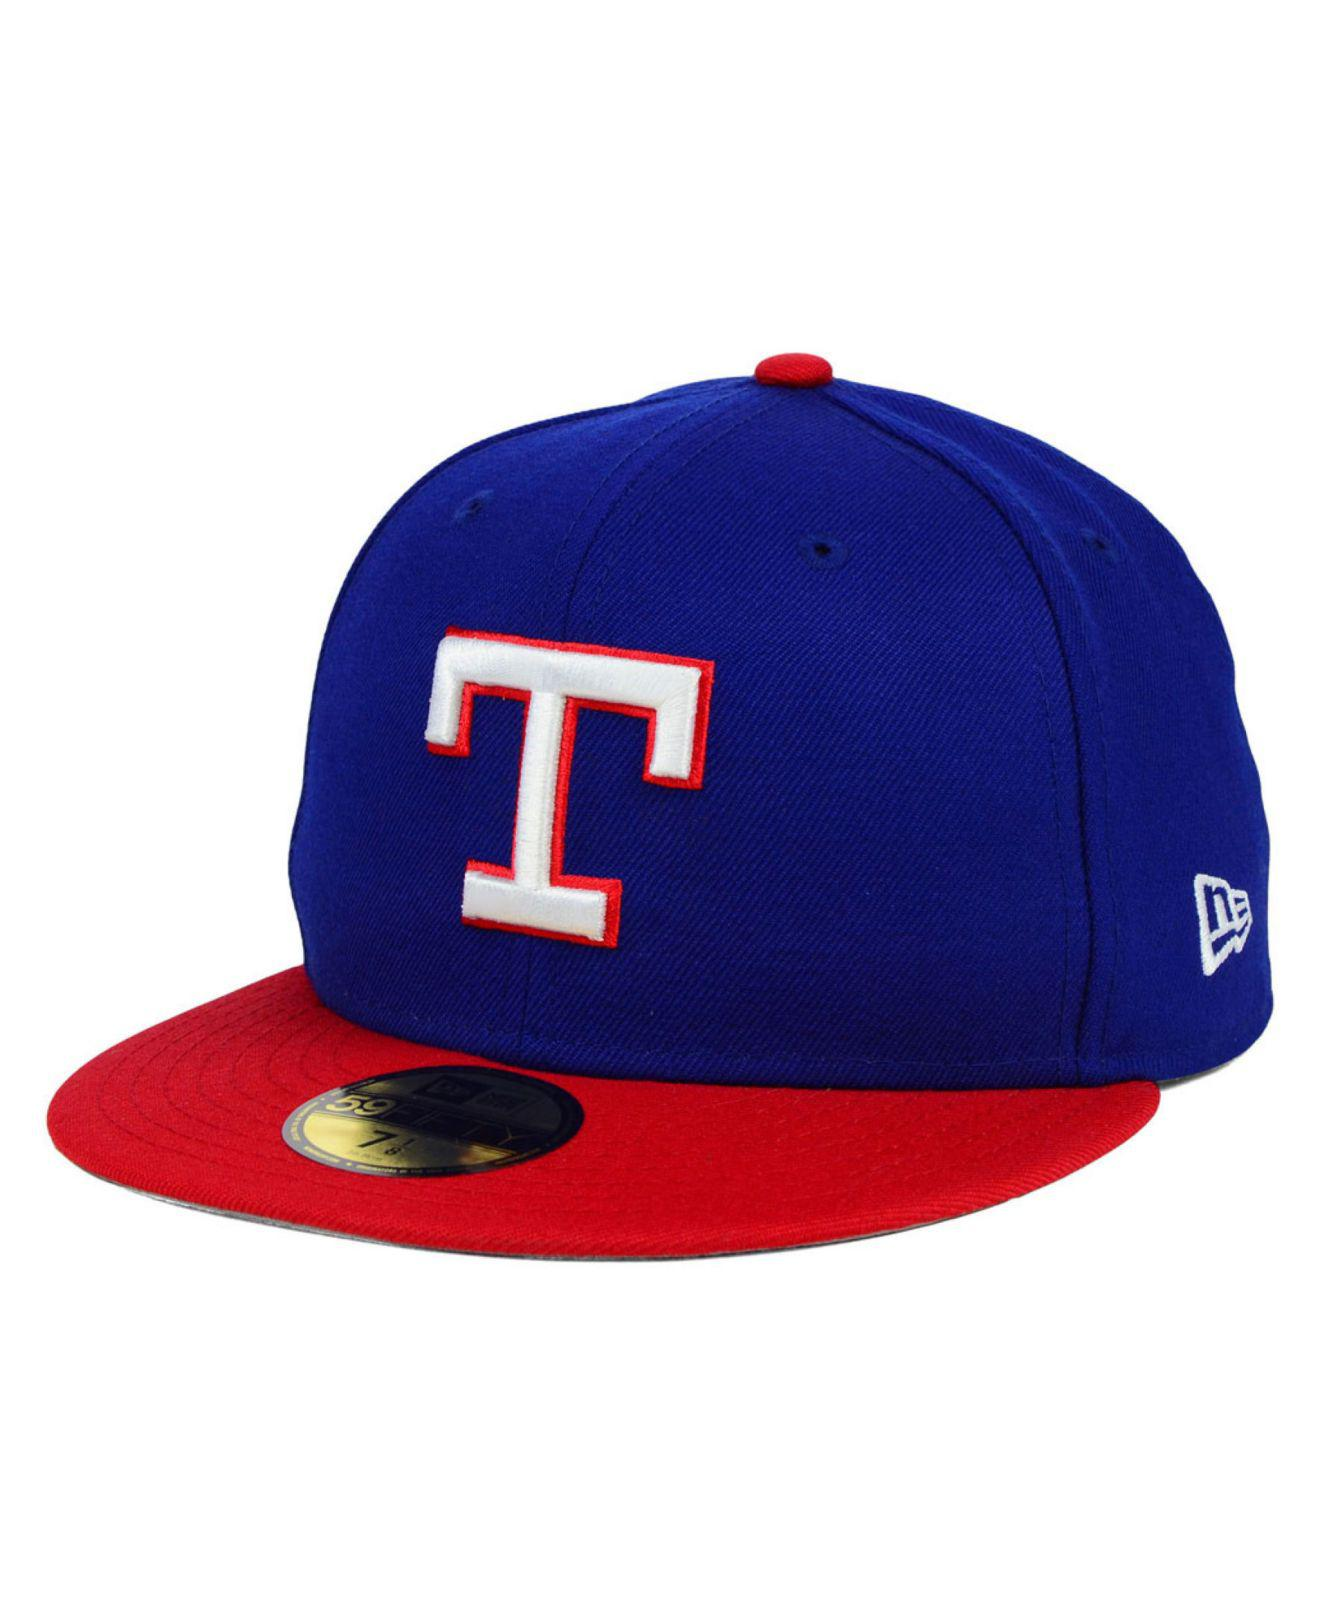 9f91437f0 Men's Red Texas Rangers Mlb Cooperstown 59fifty Cap